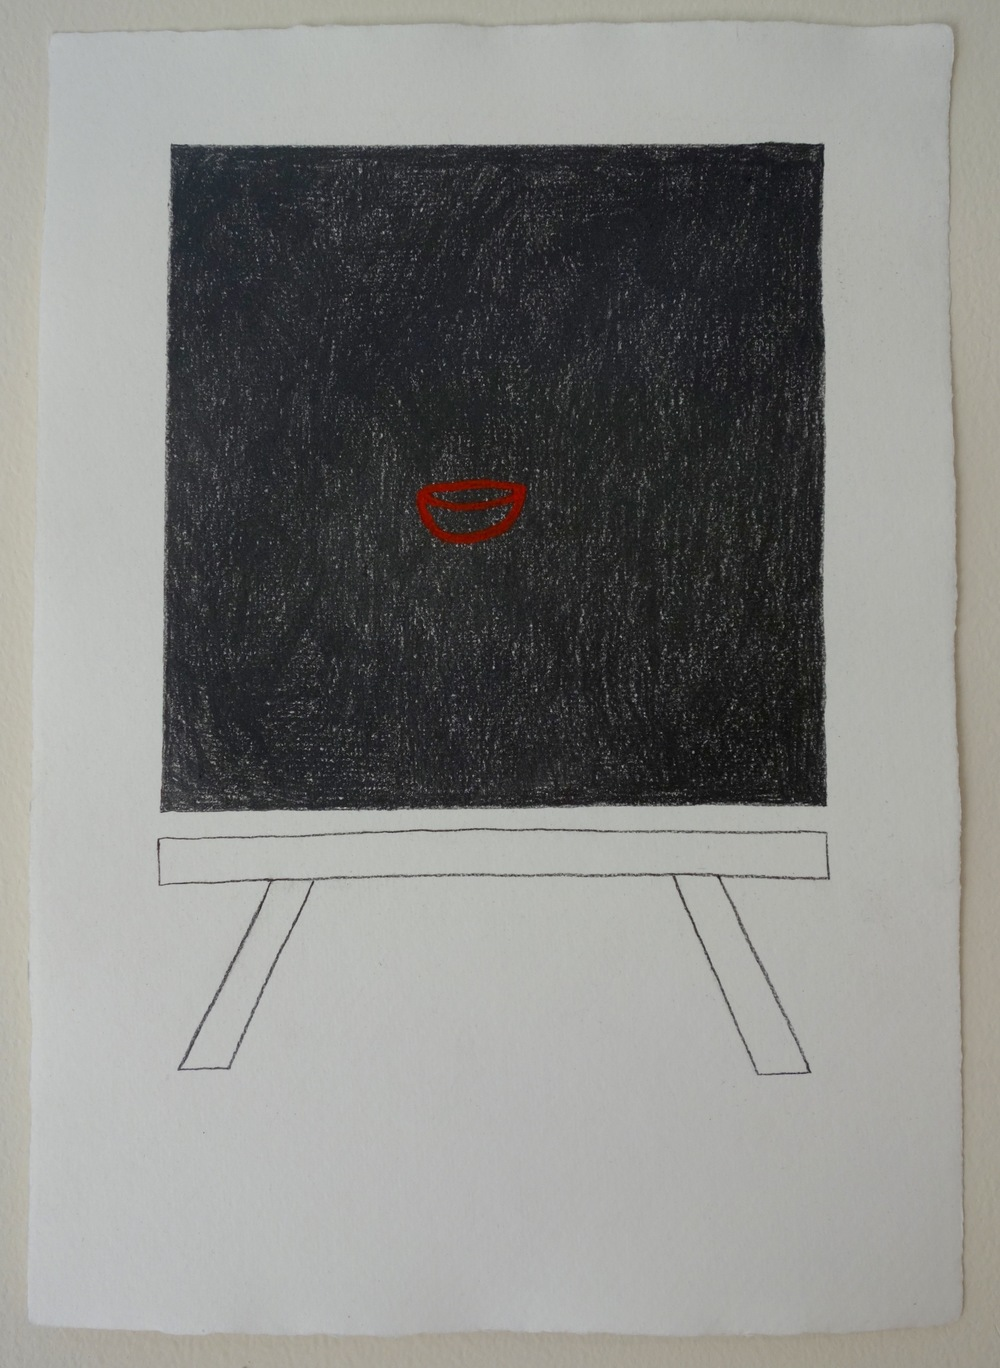 BLACK SQUARE/BENCH